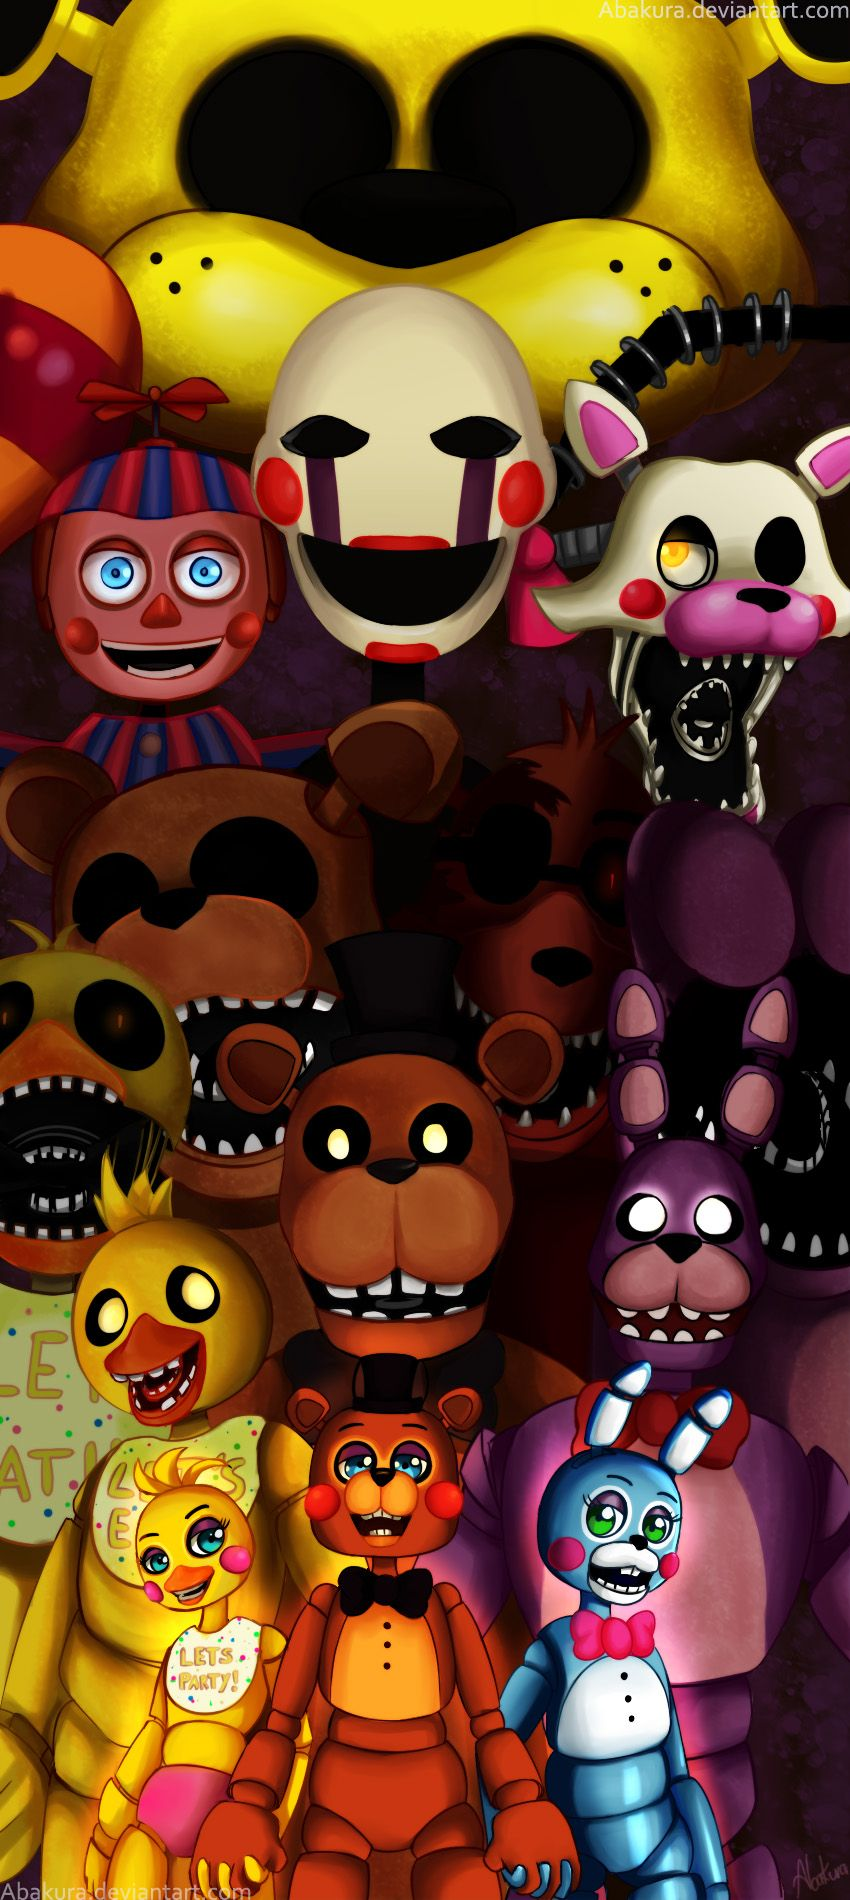 Five Nights At Freddy S Bedroom Decor: Five Nights At Freddy`s -All The Gang By Abakura